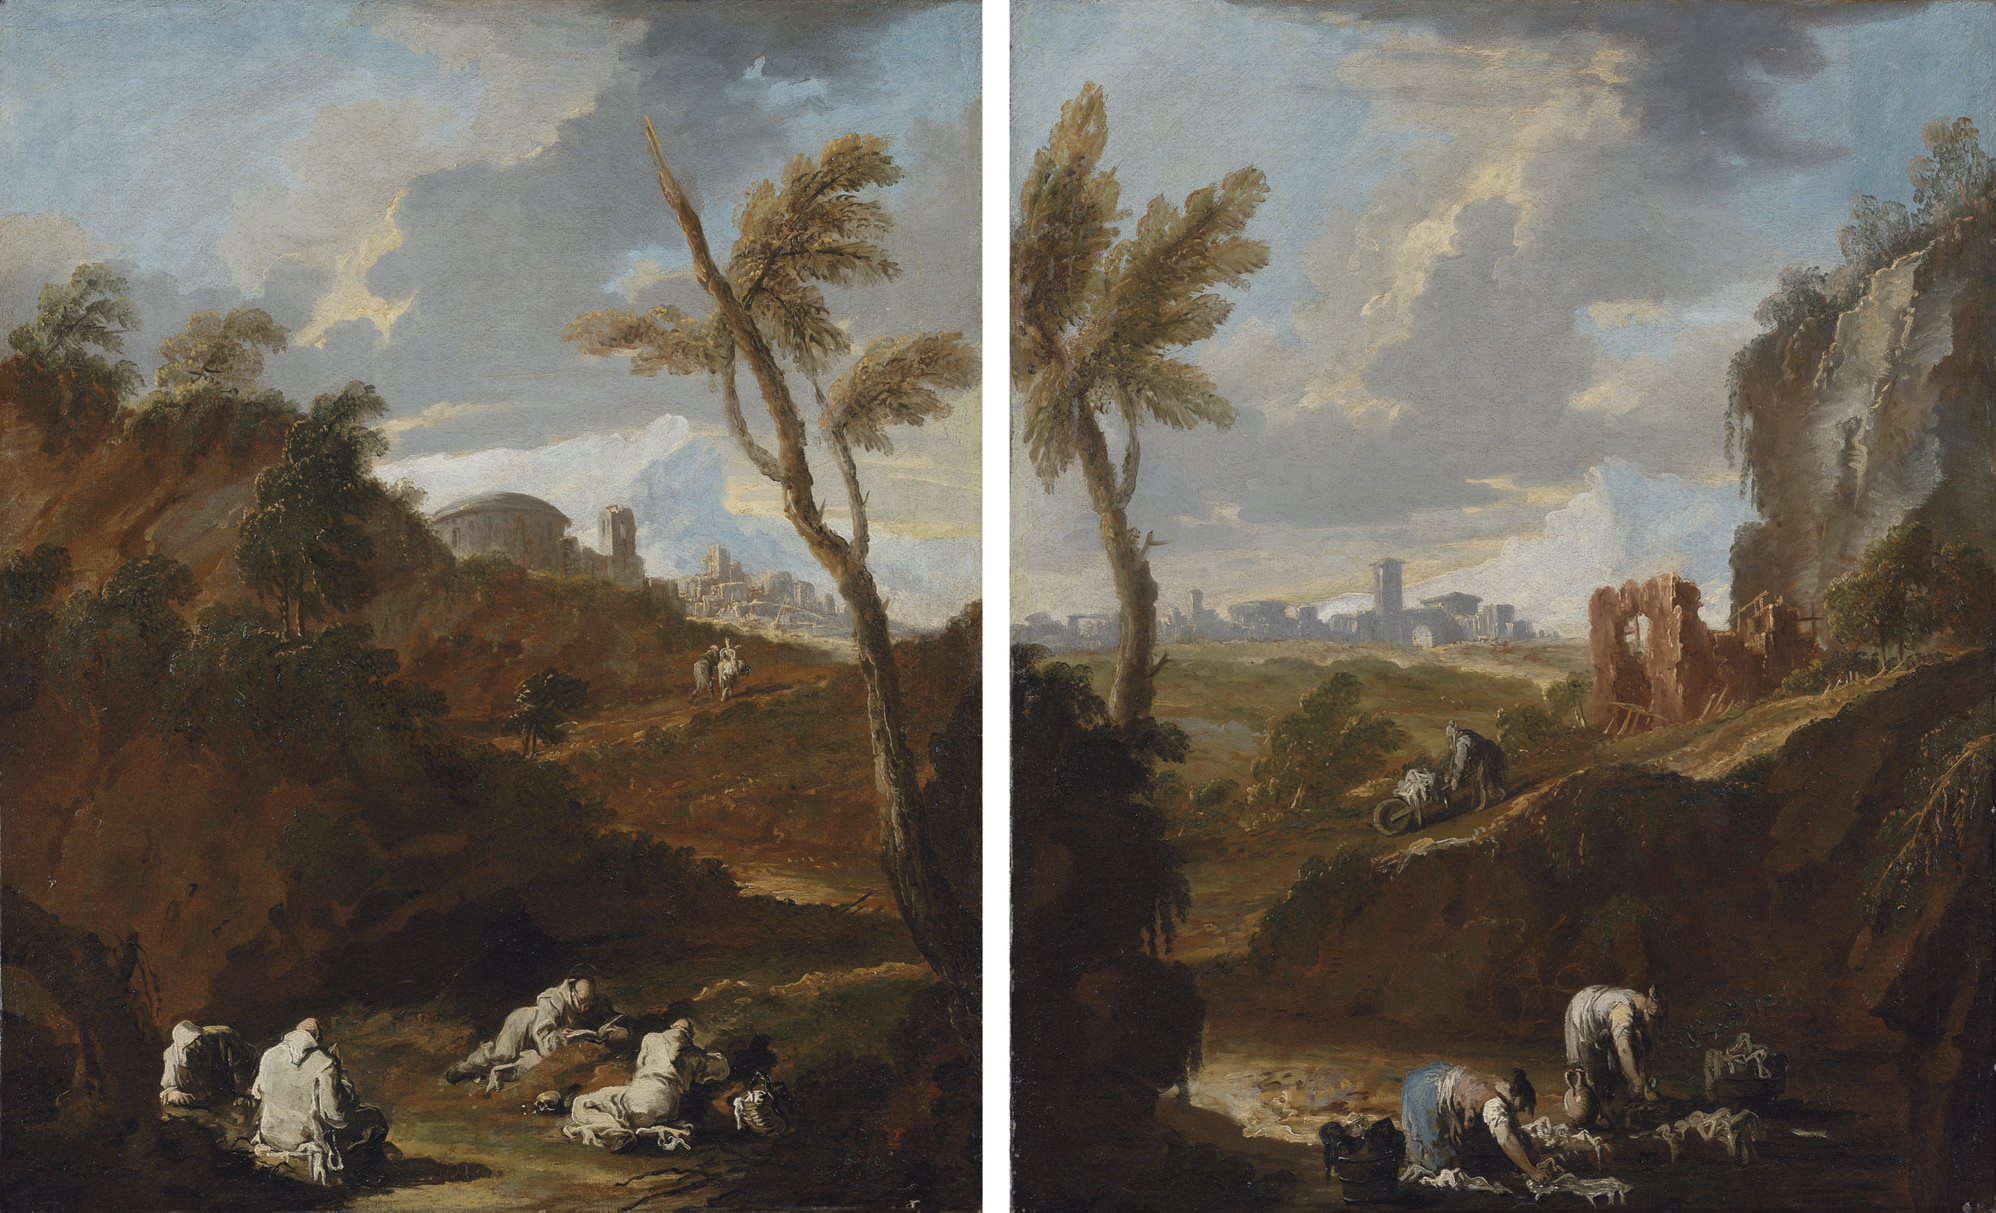 Monks studying in a landscape; and Washerwomen by a stream